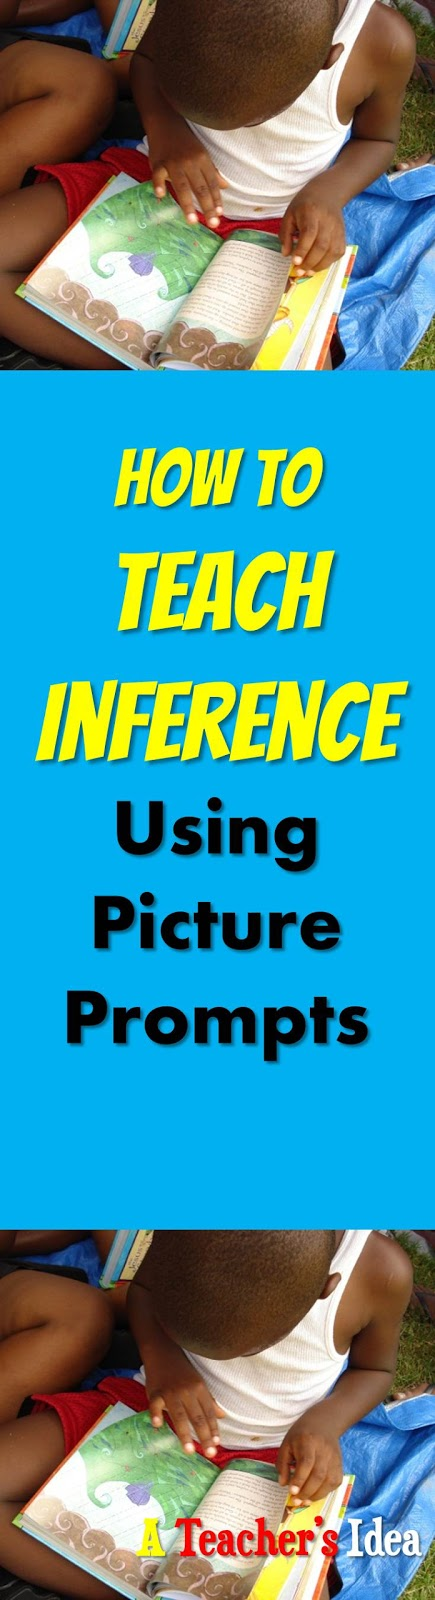 How to teach inference using picture prompts